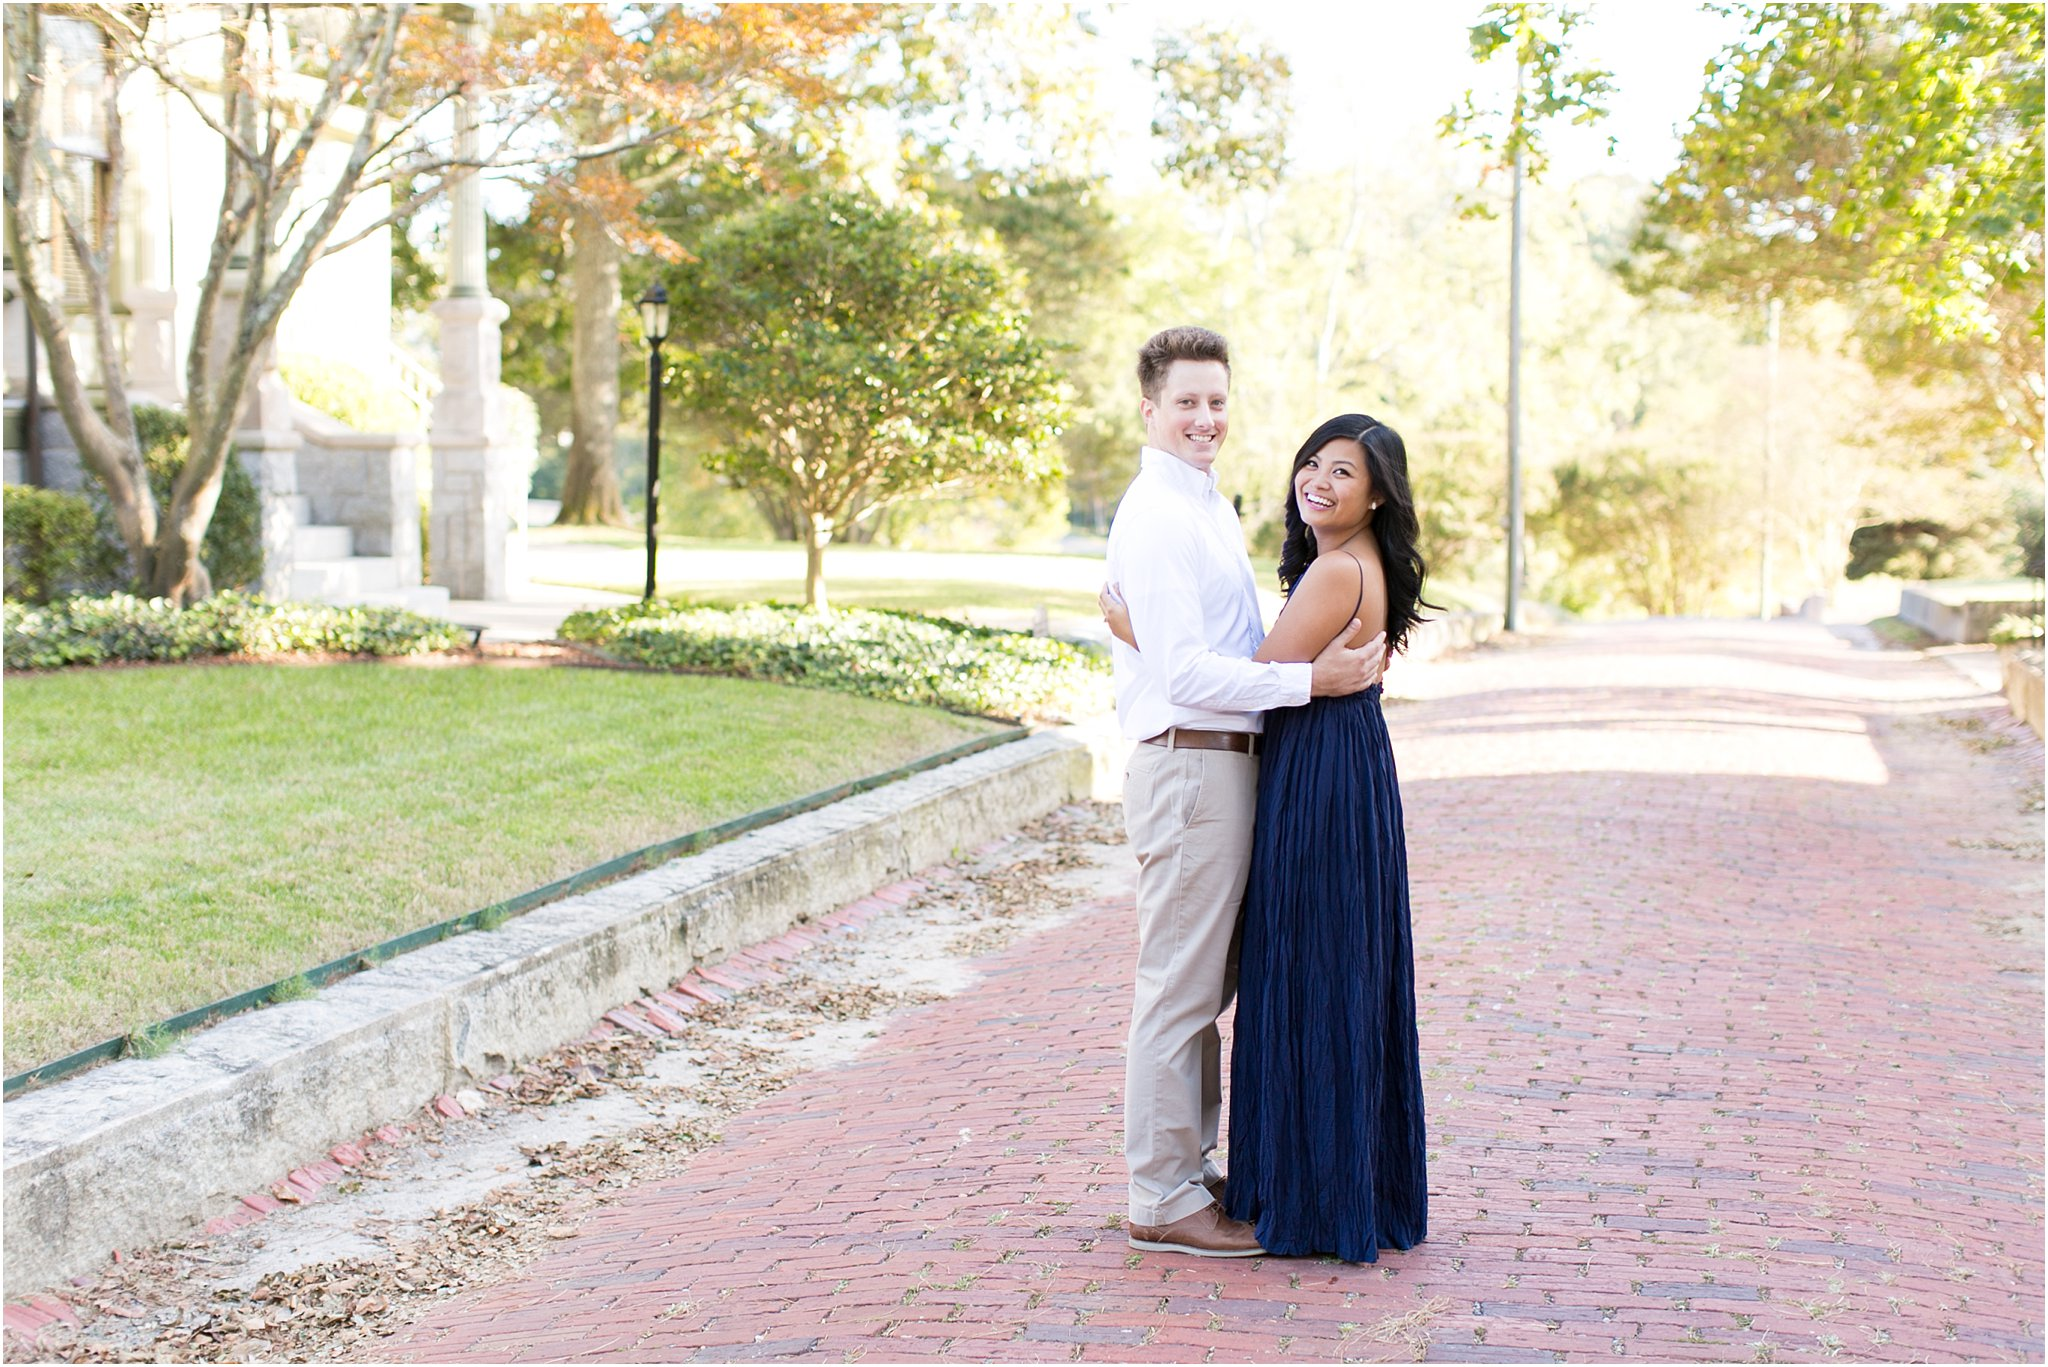 jessica_ryan_photography_virginia_smithfield_historical_downtown_engagement_portraits_candid_authentic_3701